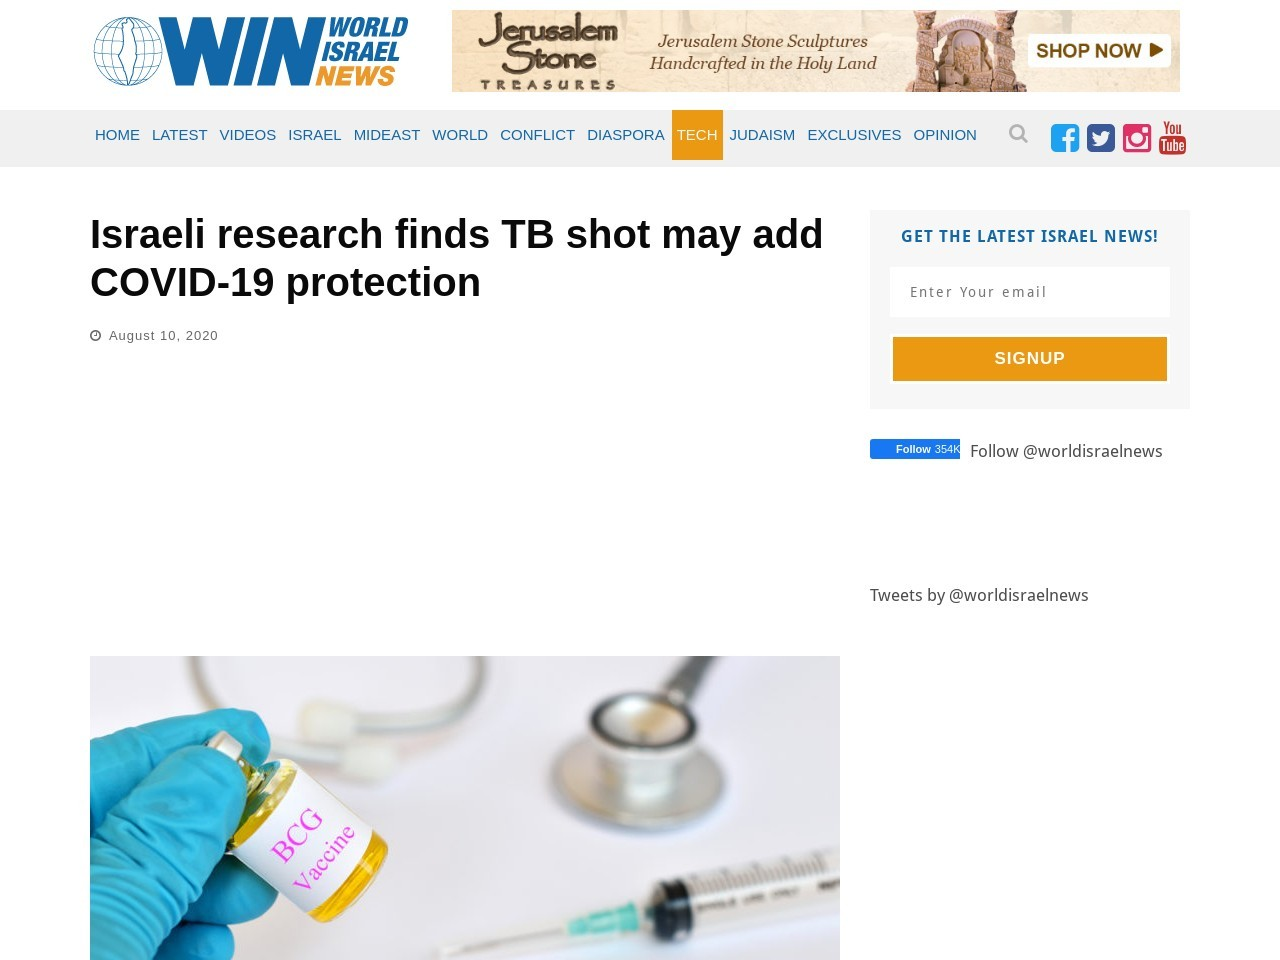 Israeli research finds TB shot may add COVID-19 protection